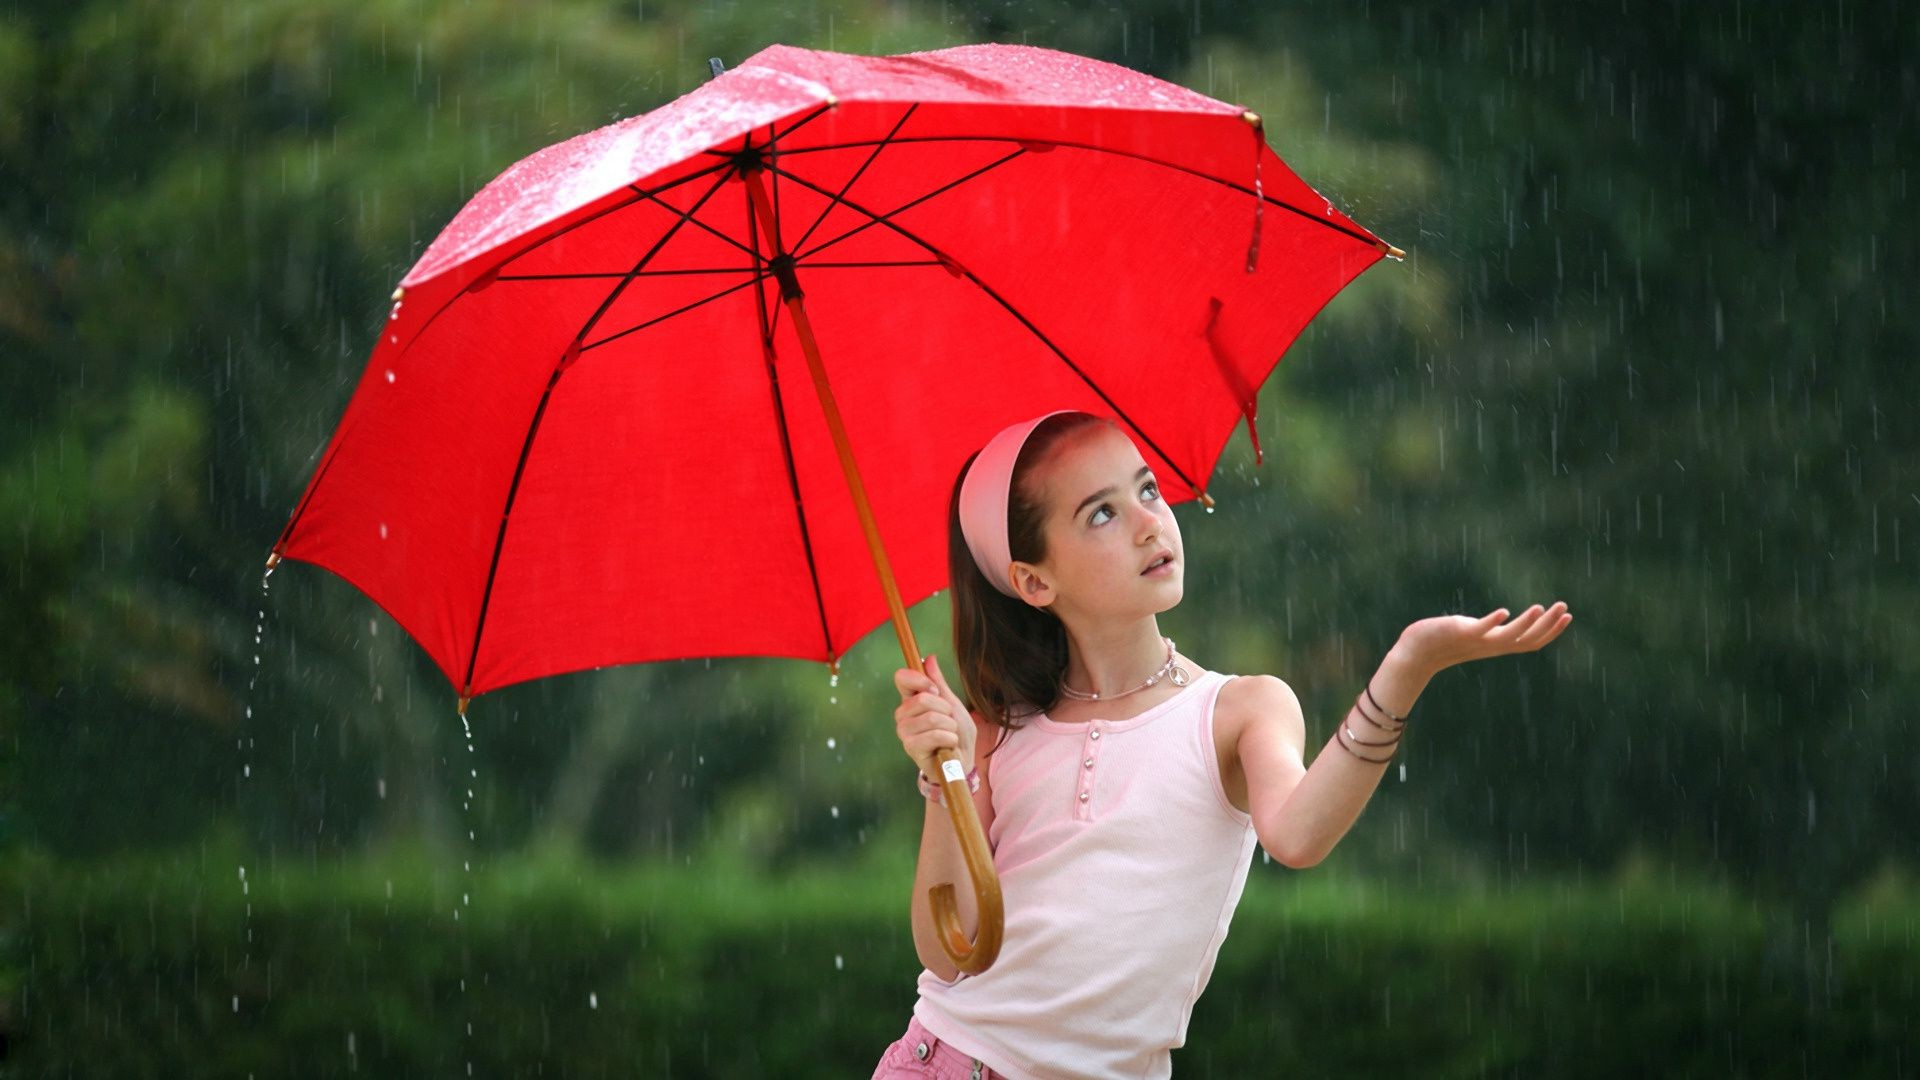 Girl Umbrella Red Rain. Android Wallpapers For Free